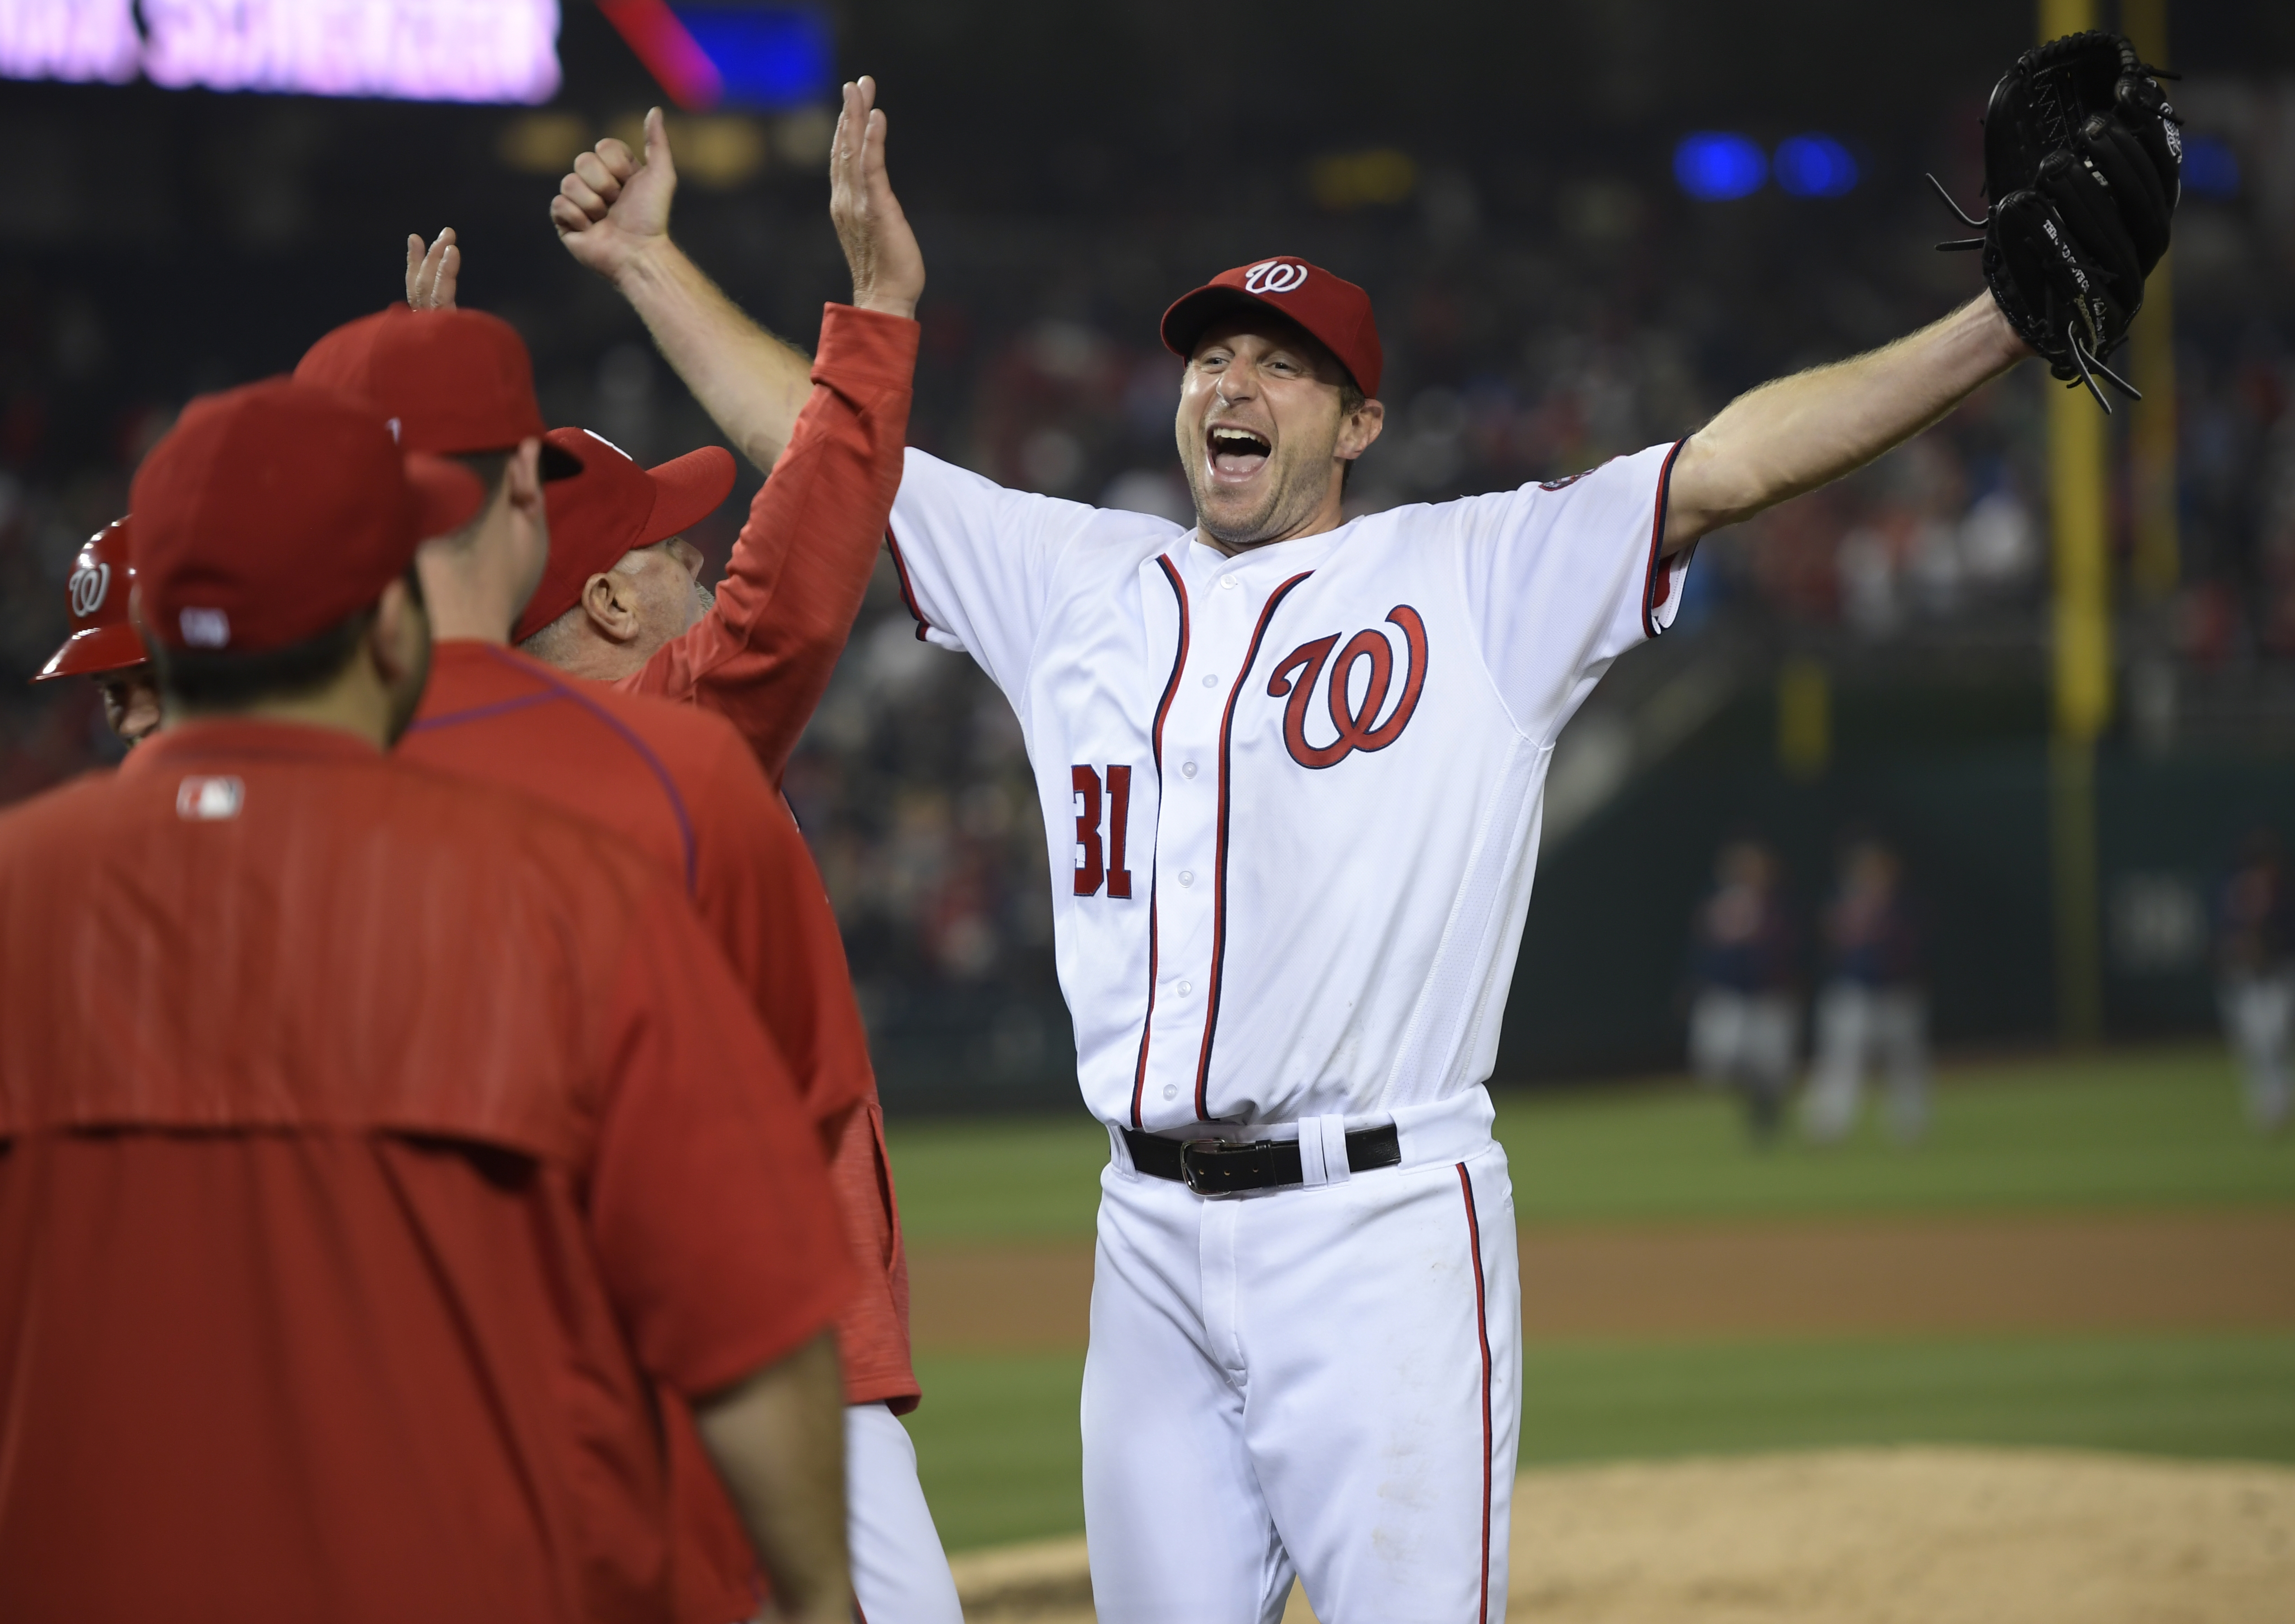 Nationals starting pitcher Max Scherzer rejoices after finishing off the Tigers on Wednesday night thanks in part to his 20 strikeouts.